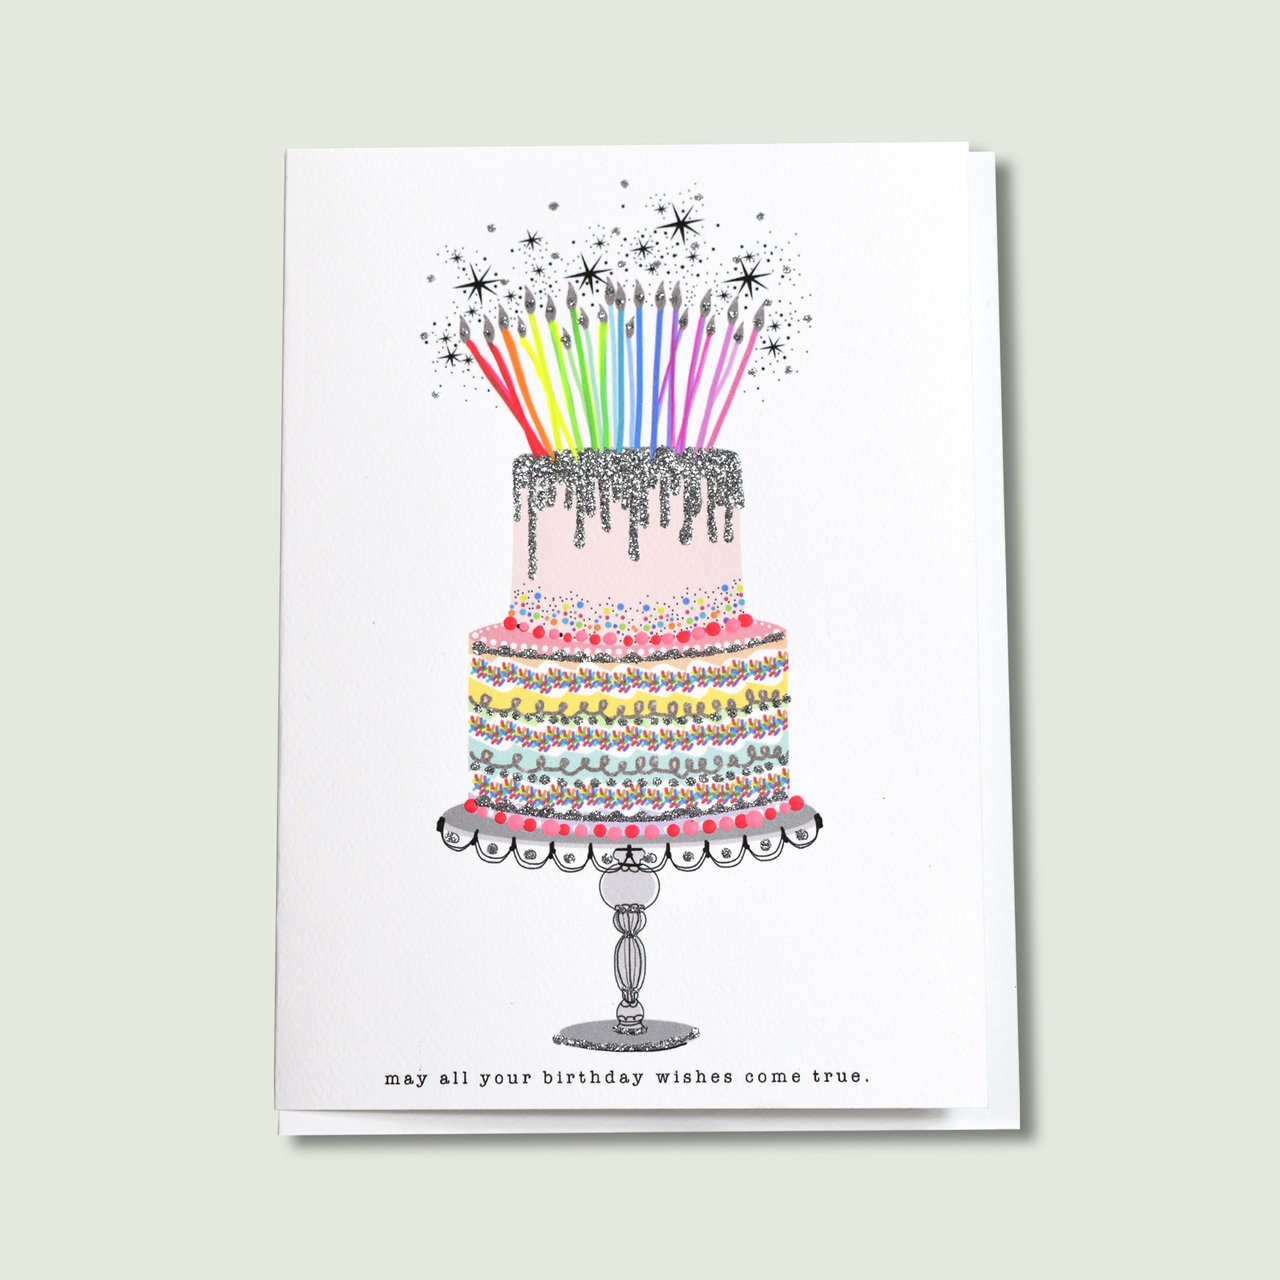 1280x1280 May All Your Birthday Wishes Come True Verrier Handcrafted